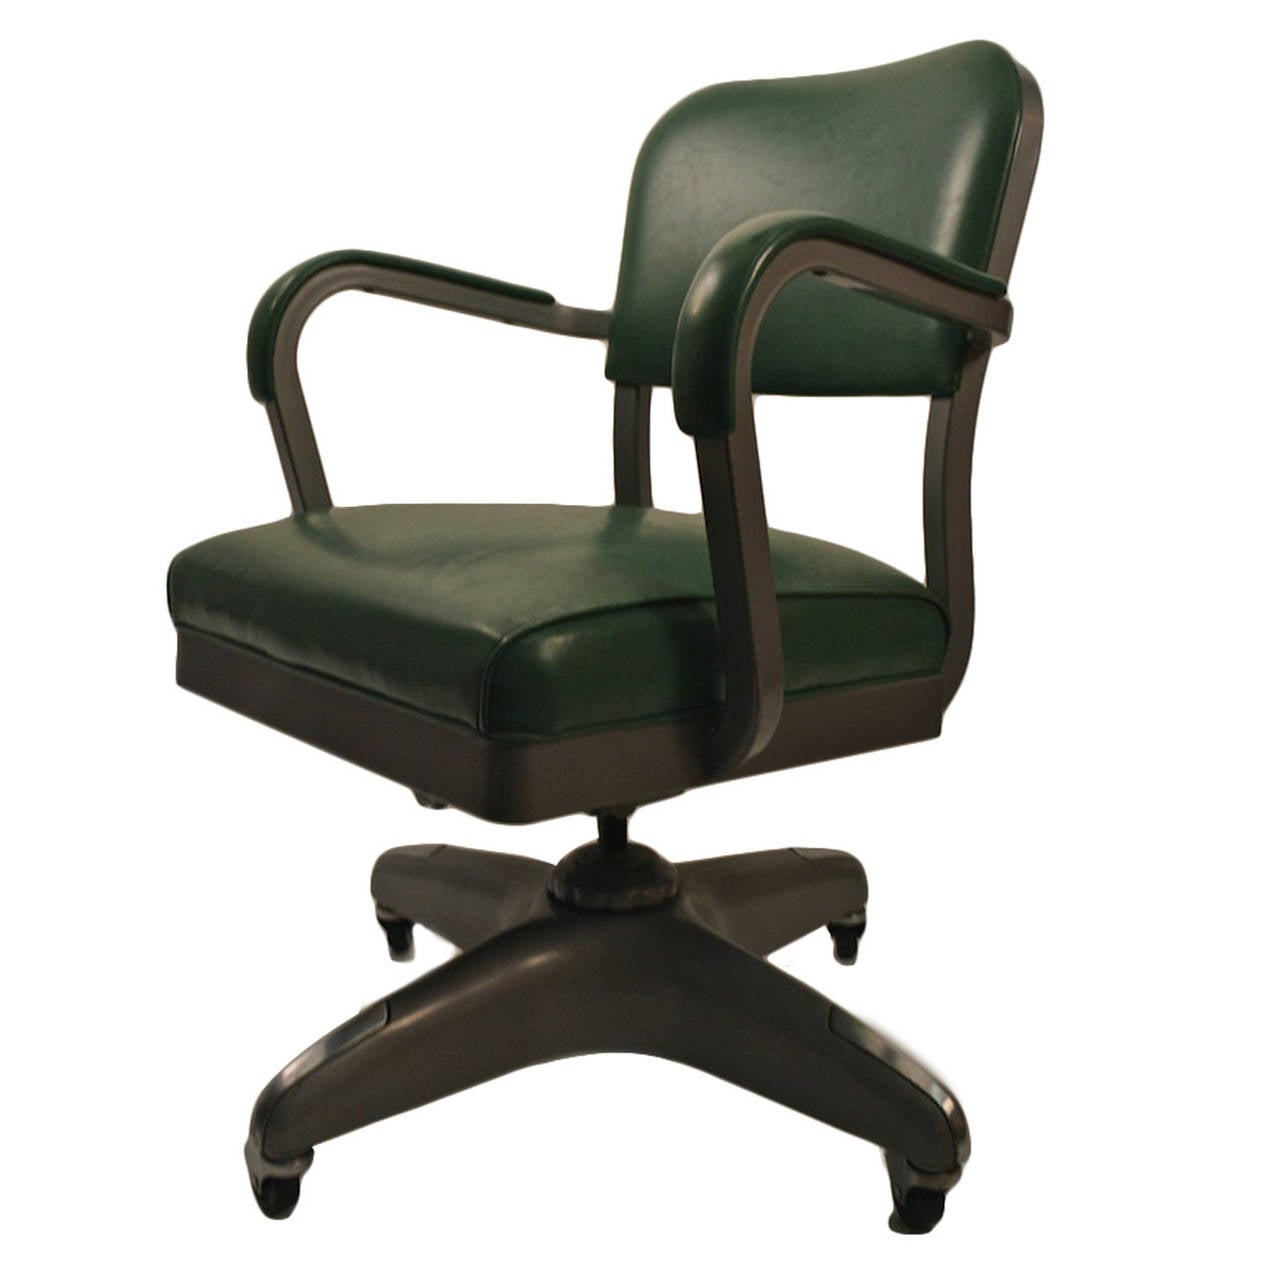 Classic Swivel Tilt Industrial Office Chair at 1stdibs